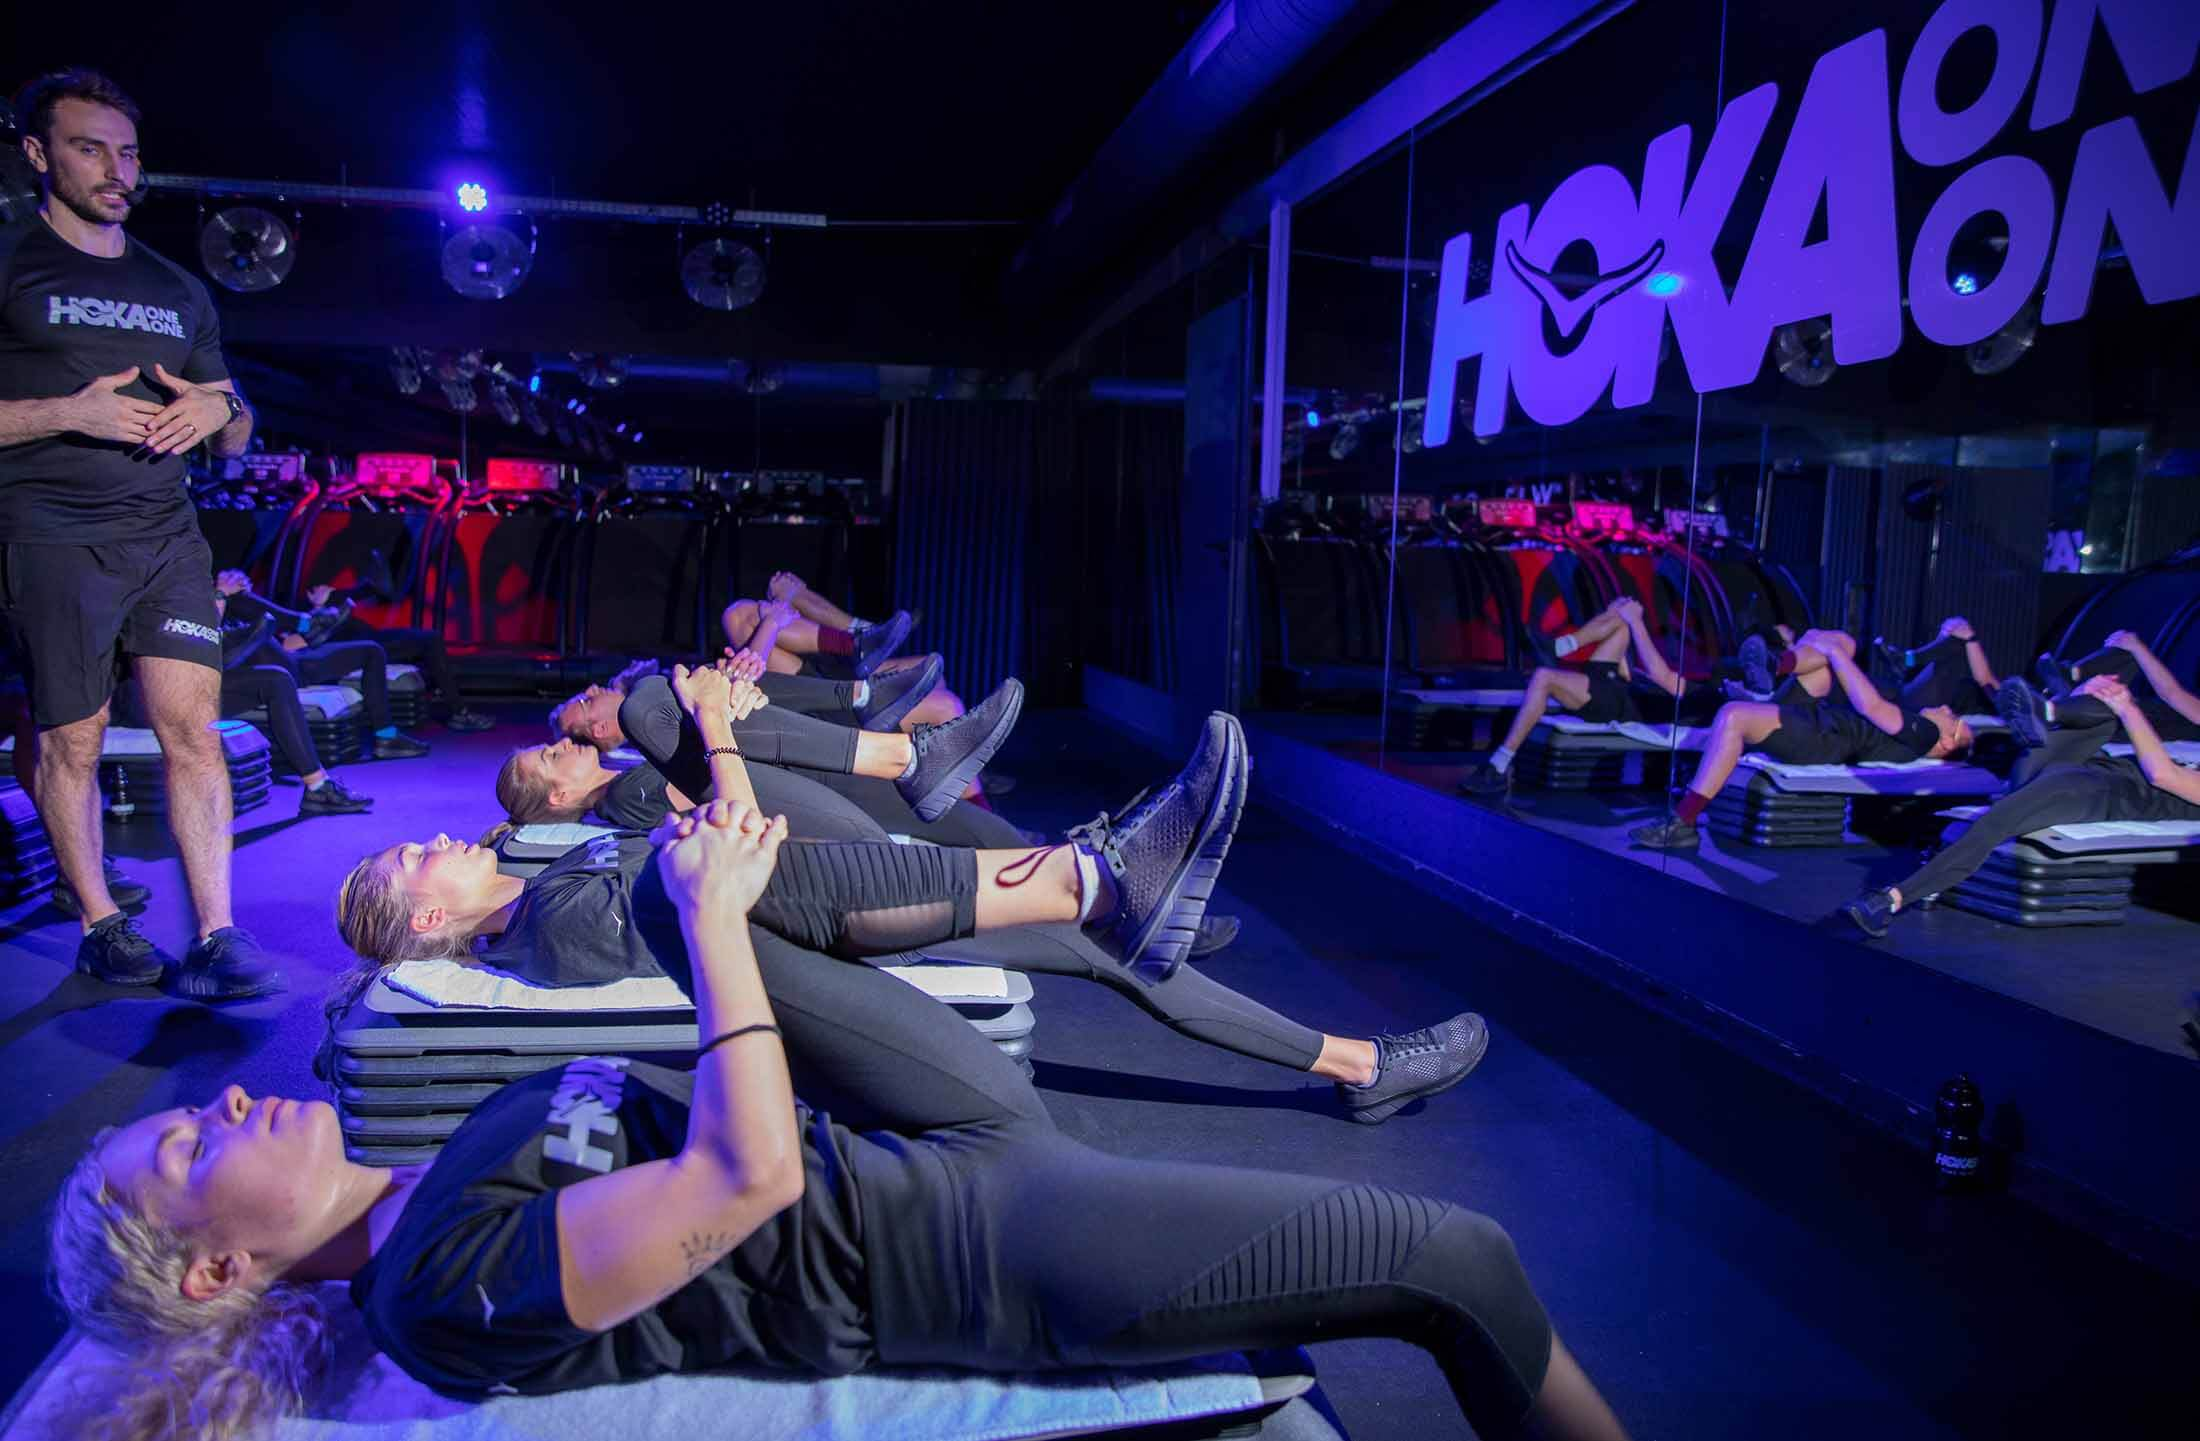 Participants stretch off at HOKA Fly at Night event in London